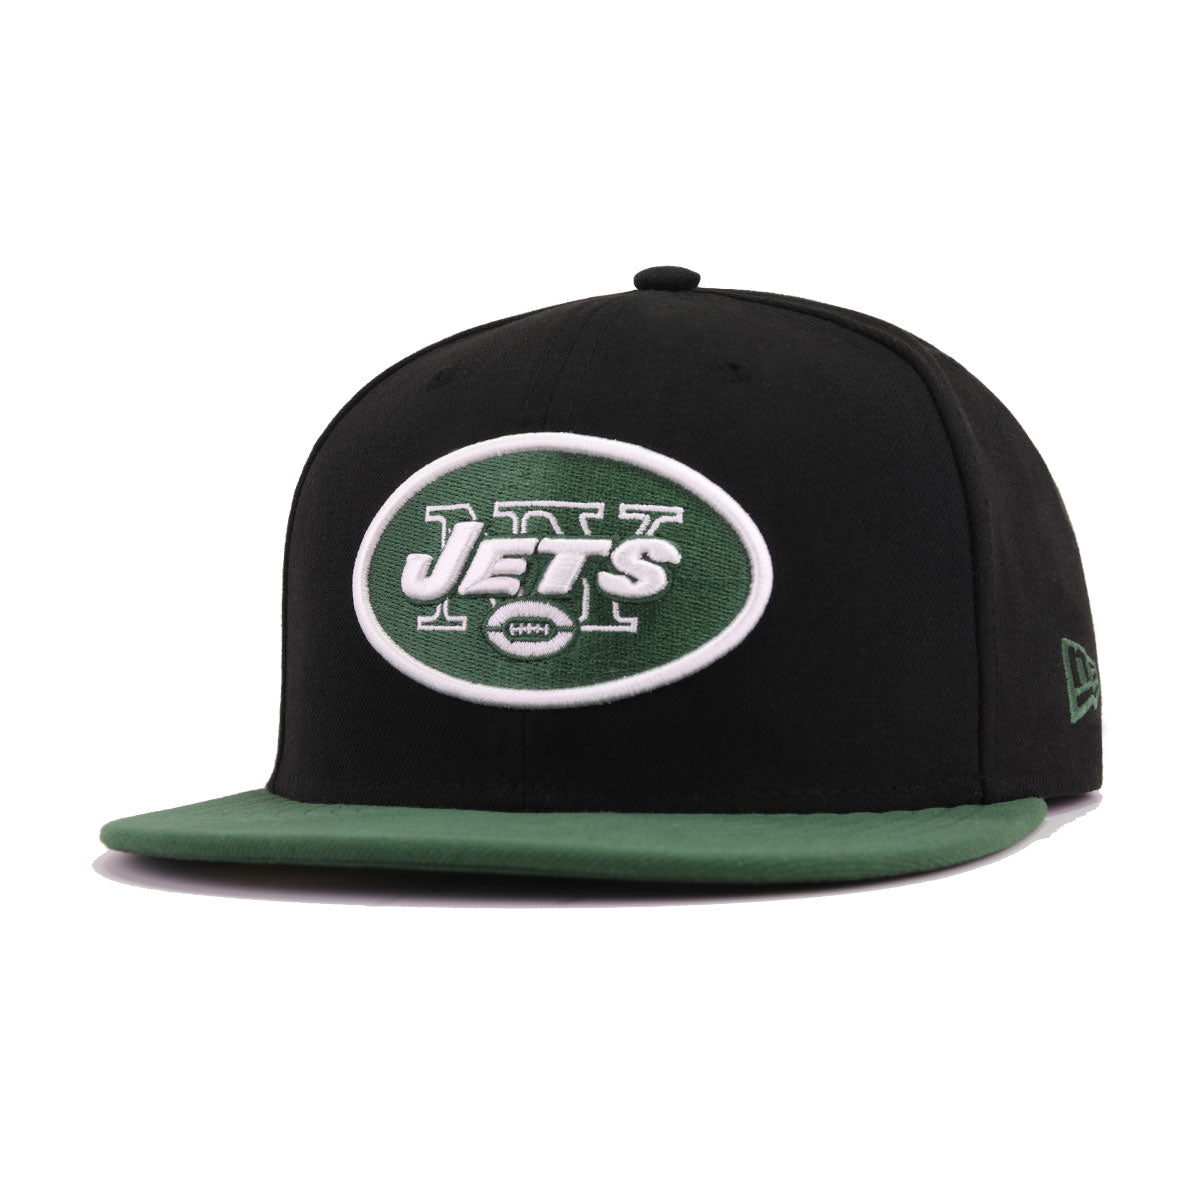 9ca31420ef1 New York Jets Black Cilantro Green New Era 59Fifty Fitted